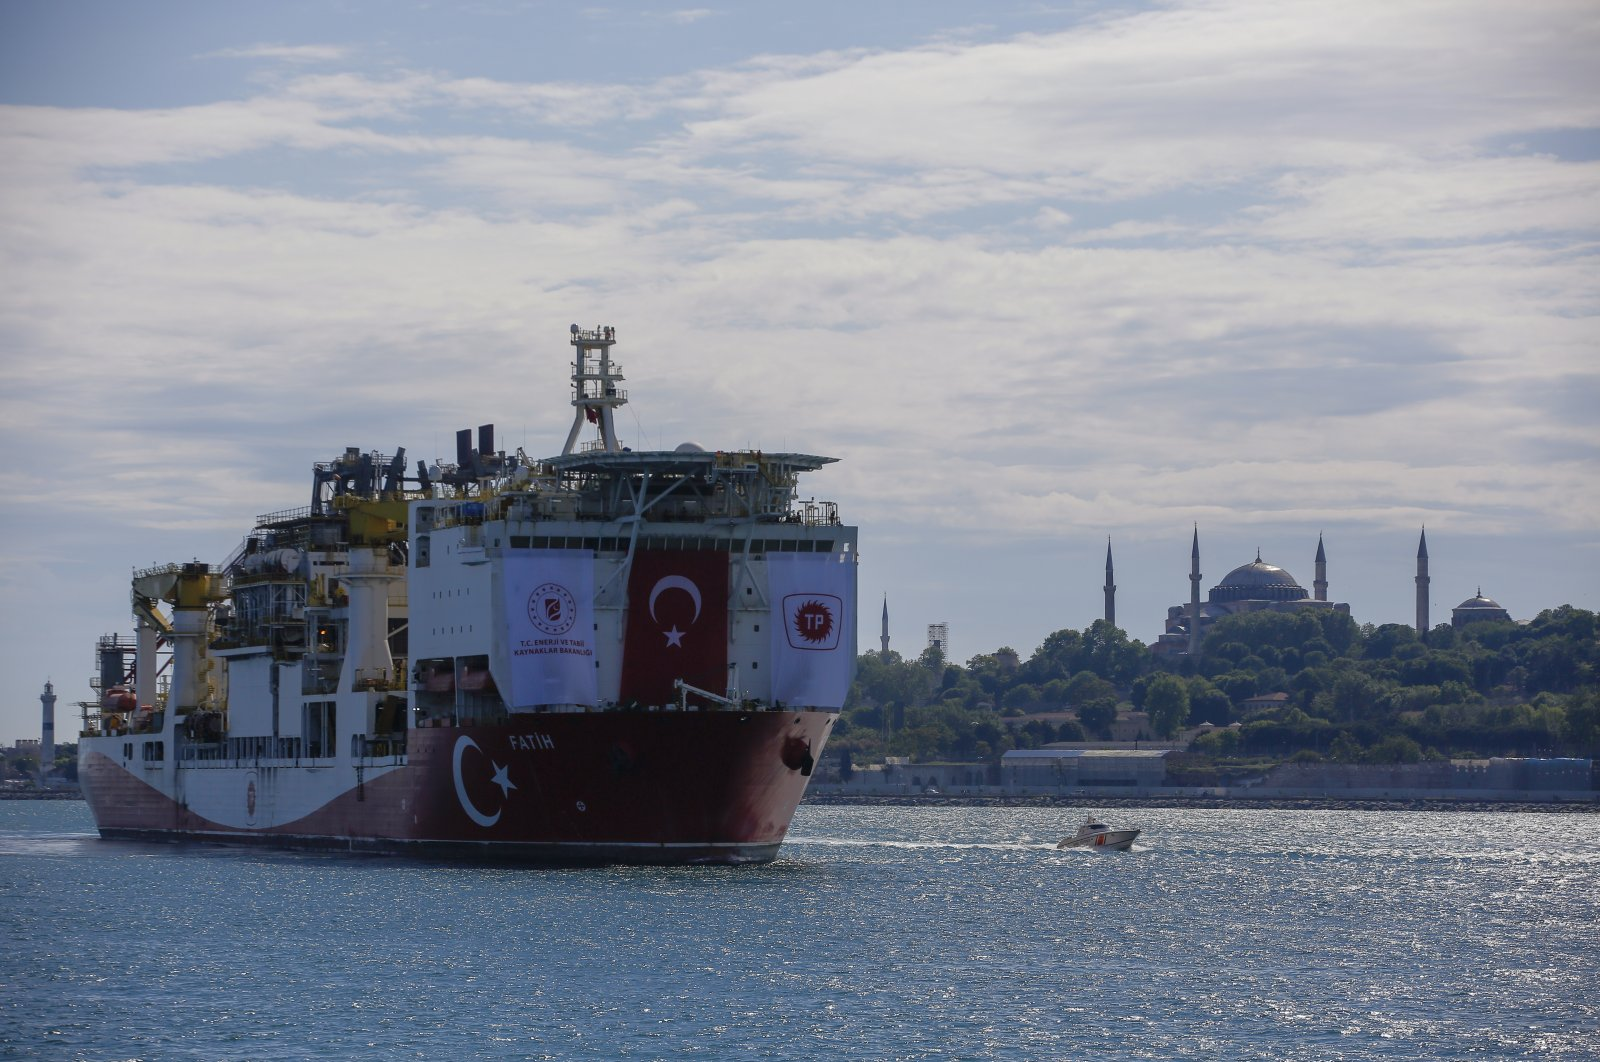 Turkey's drilling ship, Fatih, heads toward the Black Sea with Hagia Sophia in the background, in Istanbul, Turkey, May 29, 2020. (AP Photo)